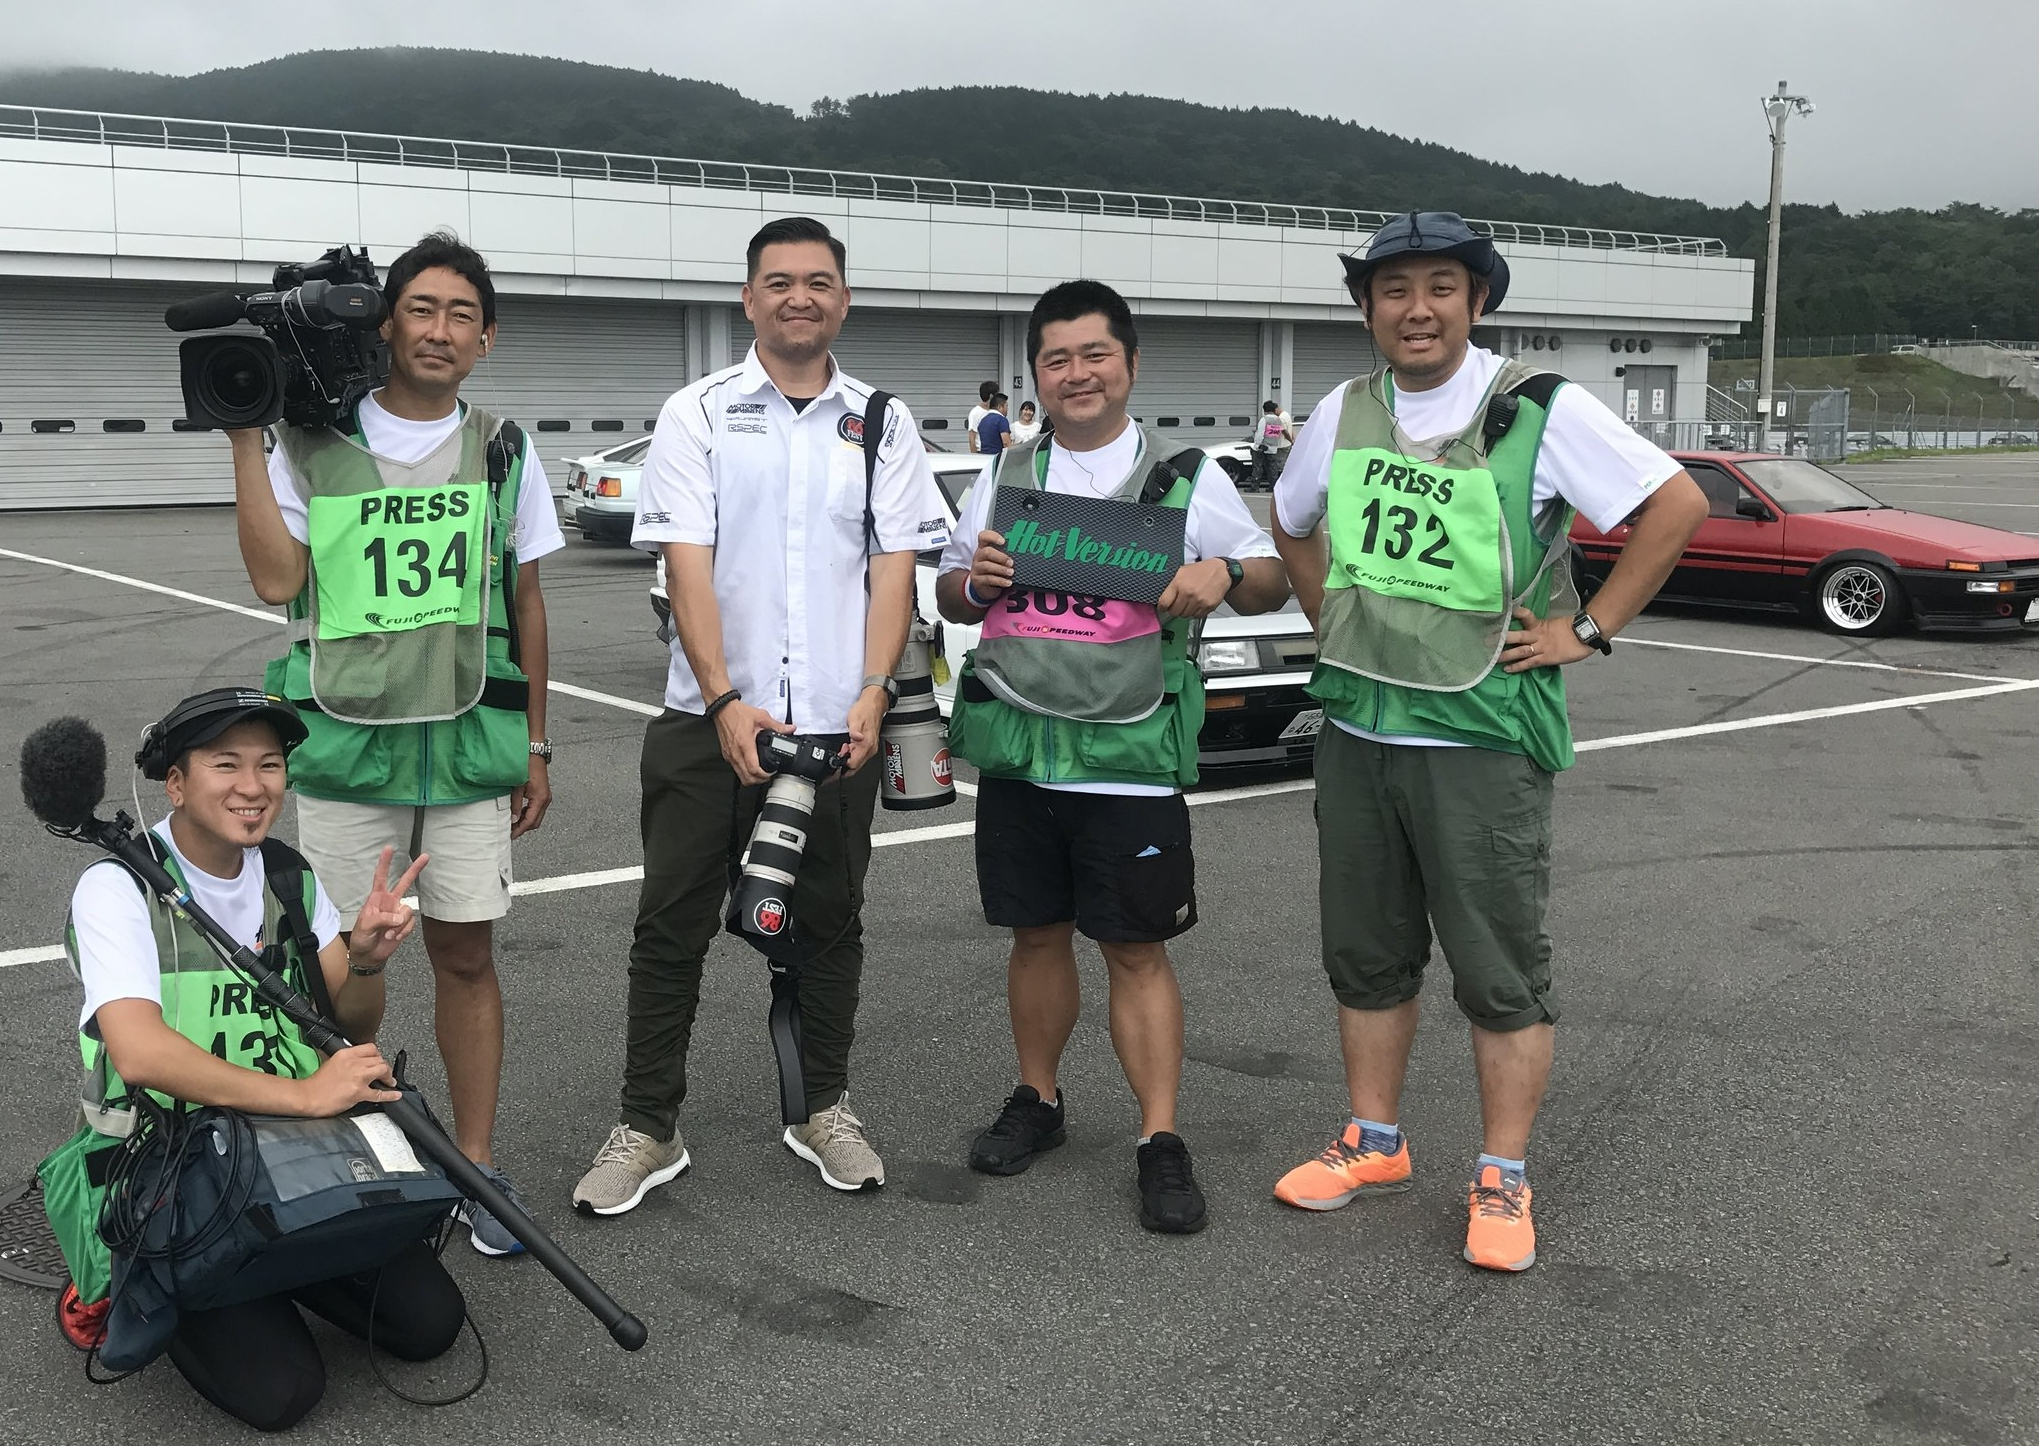 Hot Version! Good times shooting at the legendary Fuji Speedway in Japan.